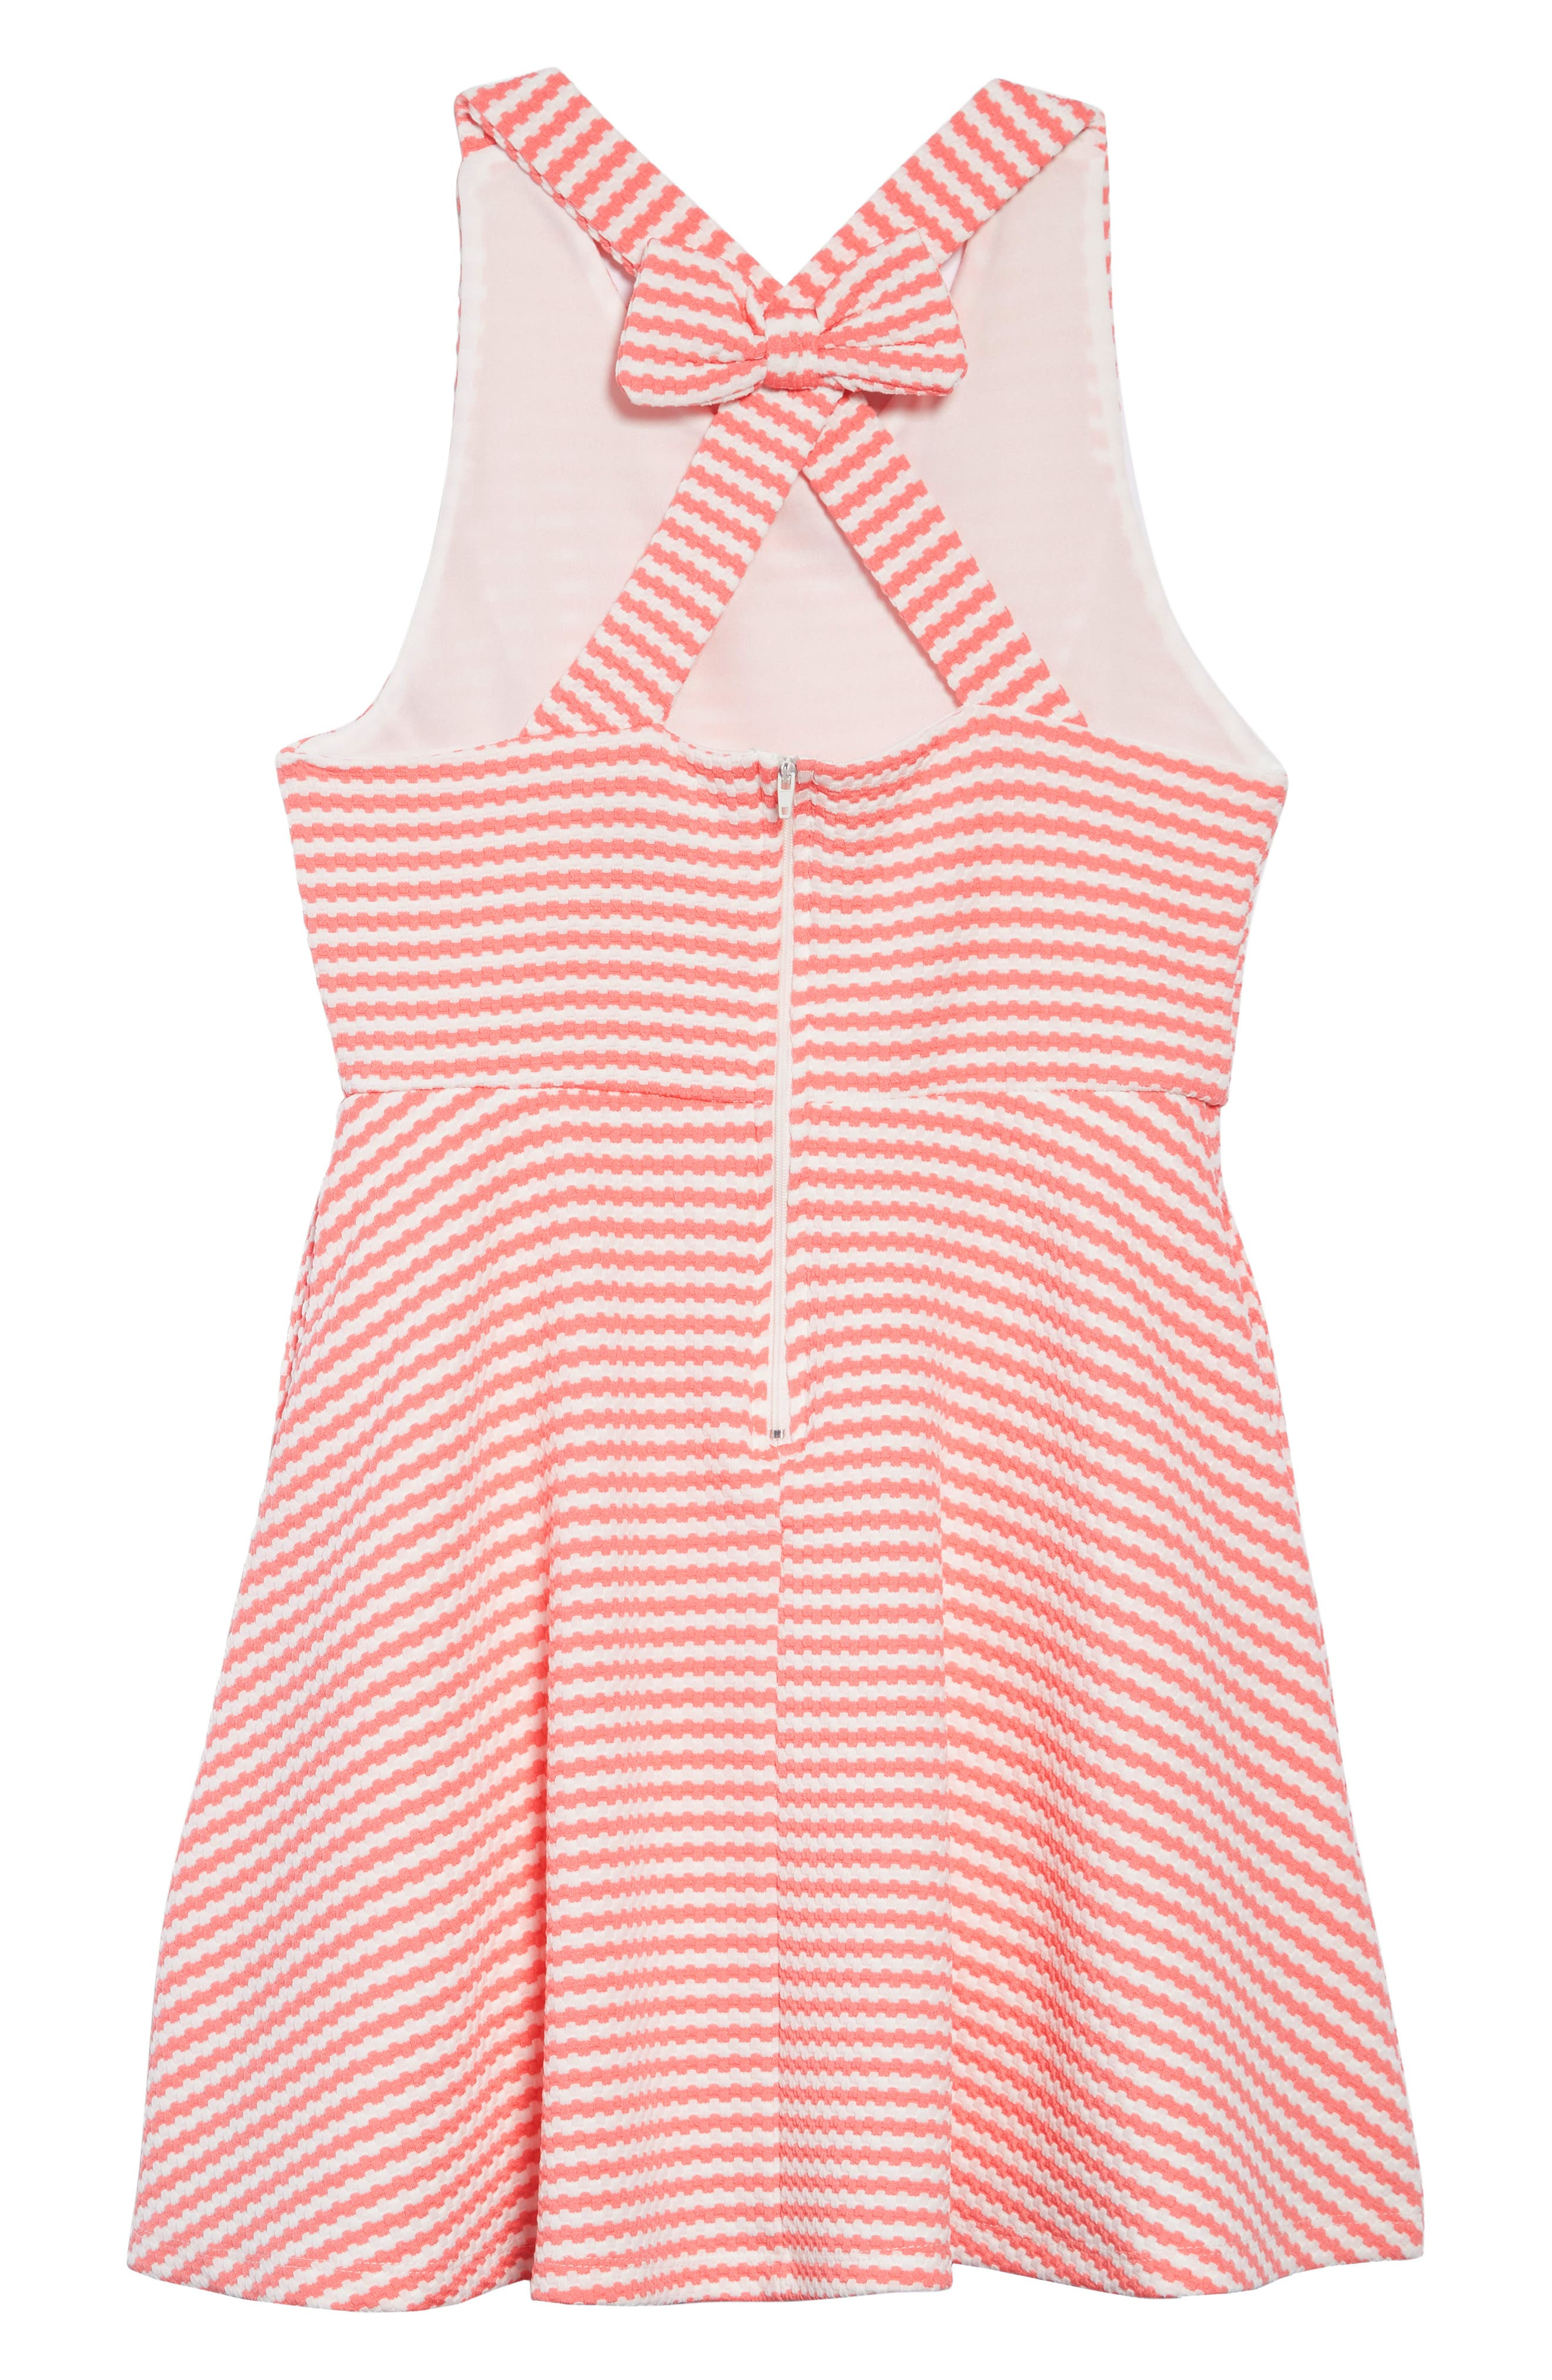 AVA & YELLY, Stripe Bow Back Skater Dress, Alternate thumbnail 2, color, 950